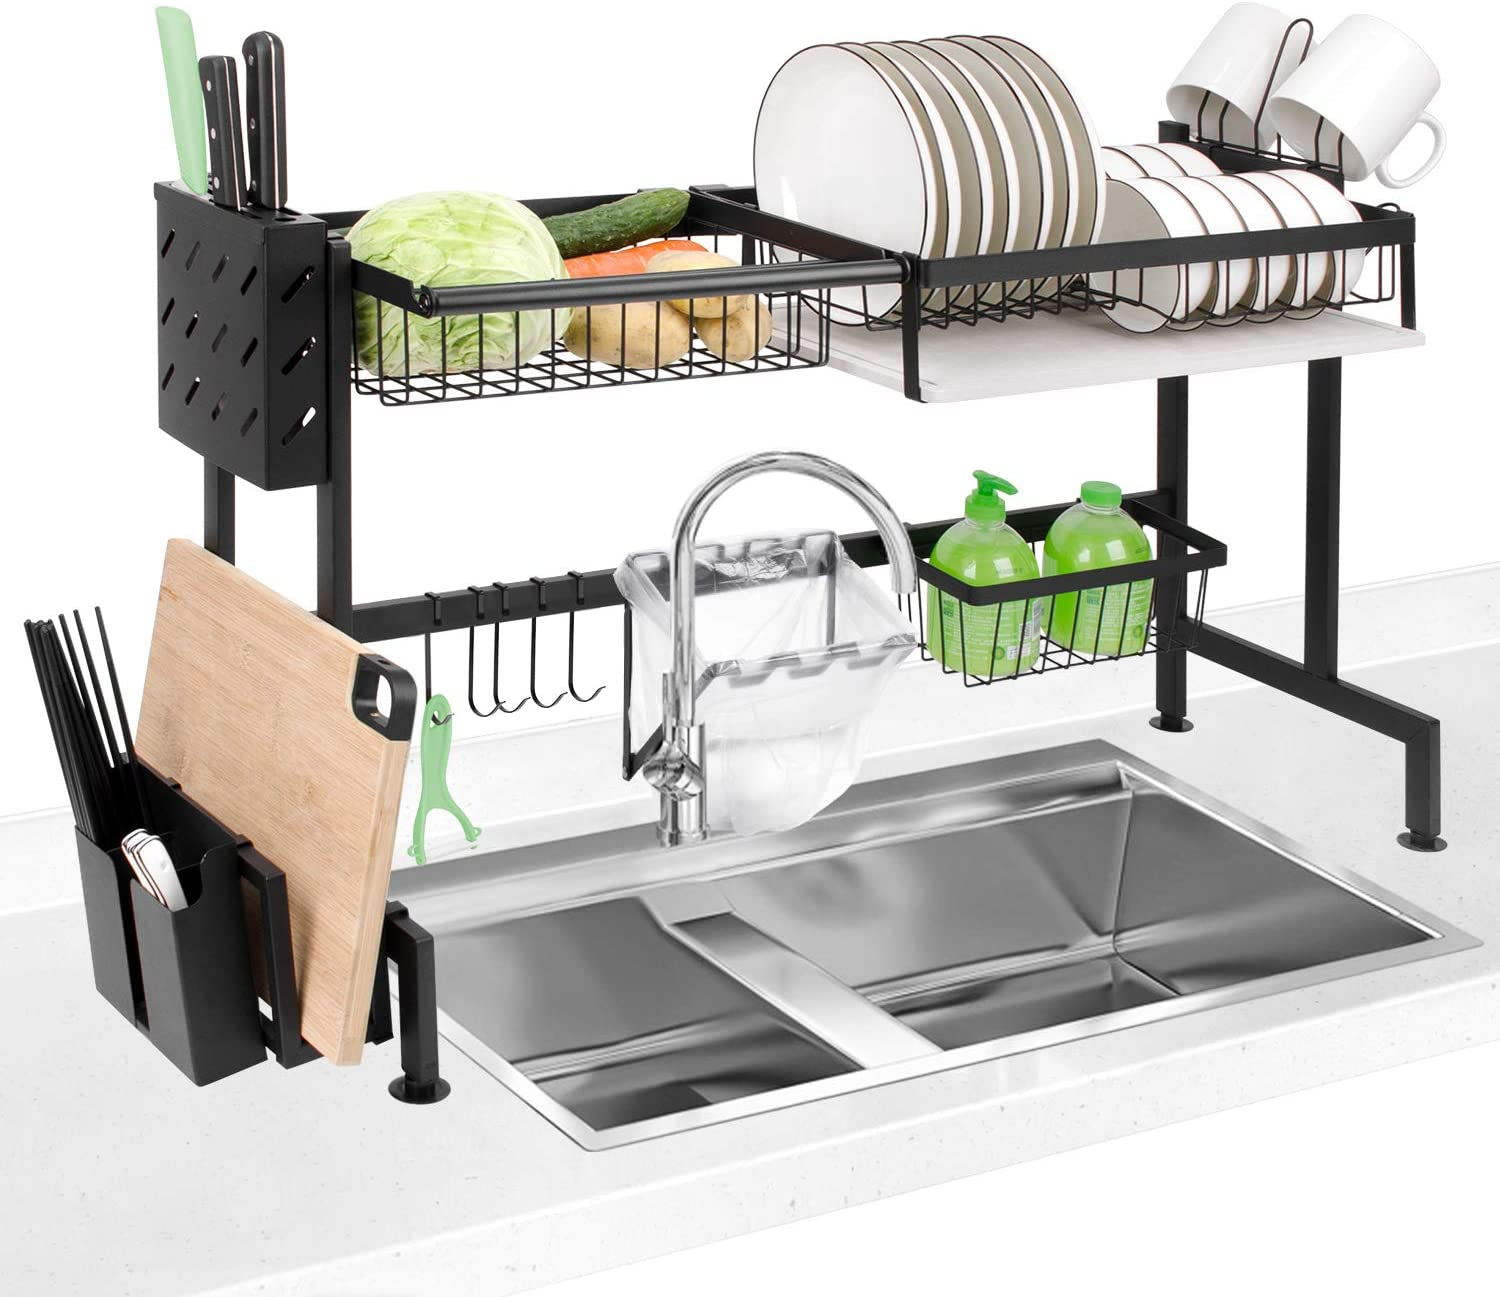 Amazon Com Dish Drying Rack Homeweeks Kitchen Stainless Steel Dish Rack Over Sink Dish Drying Rack Drainer Shelf With Utensil Holder Storage Shelf Space Saver Display Stand Kitchen Dining